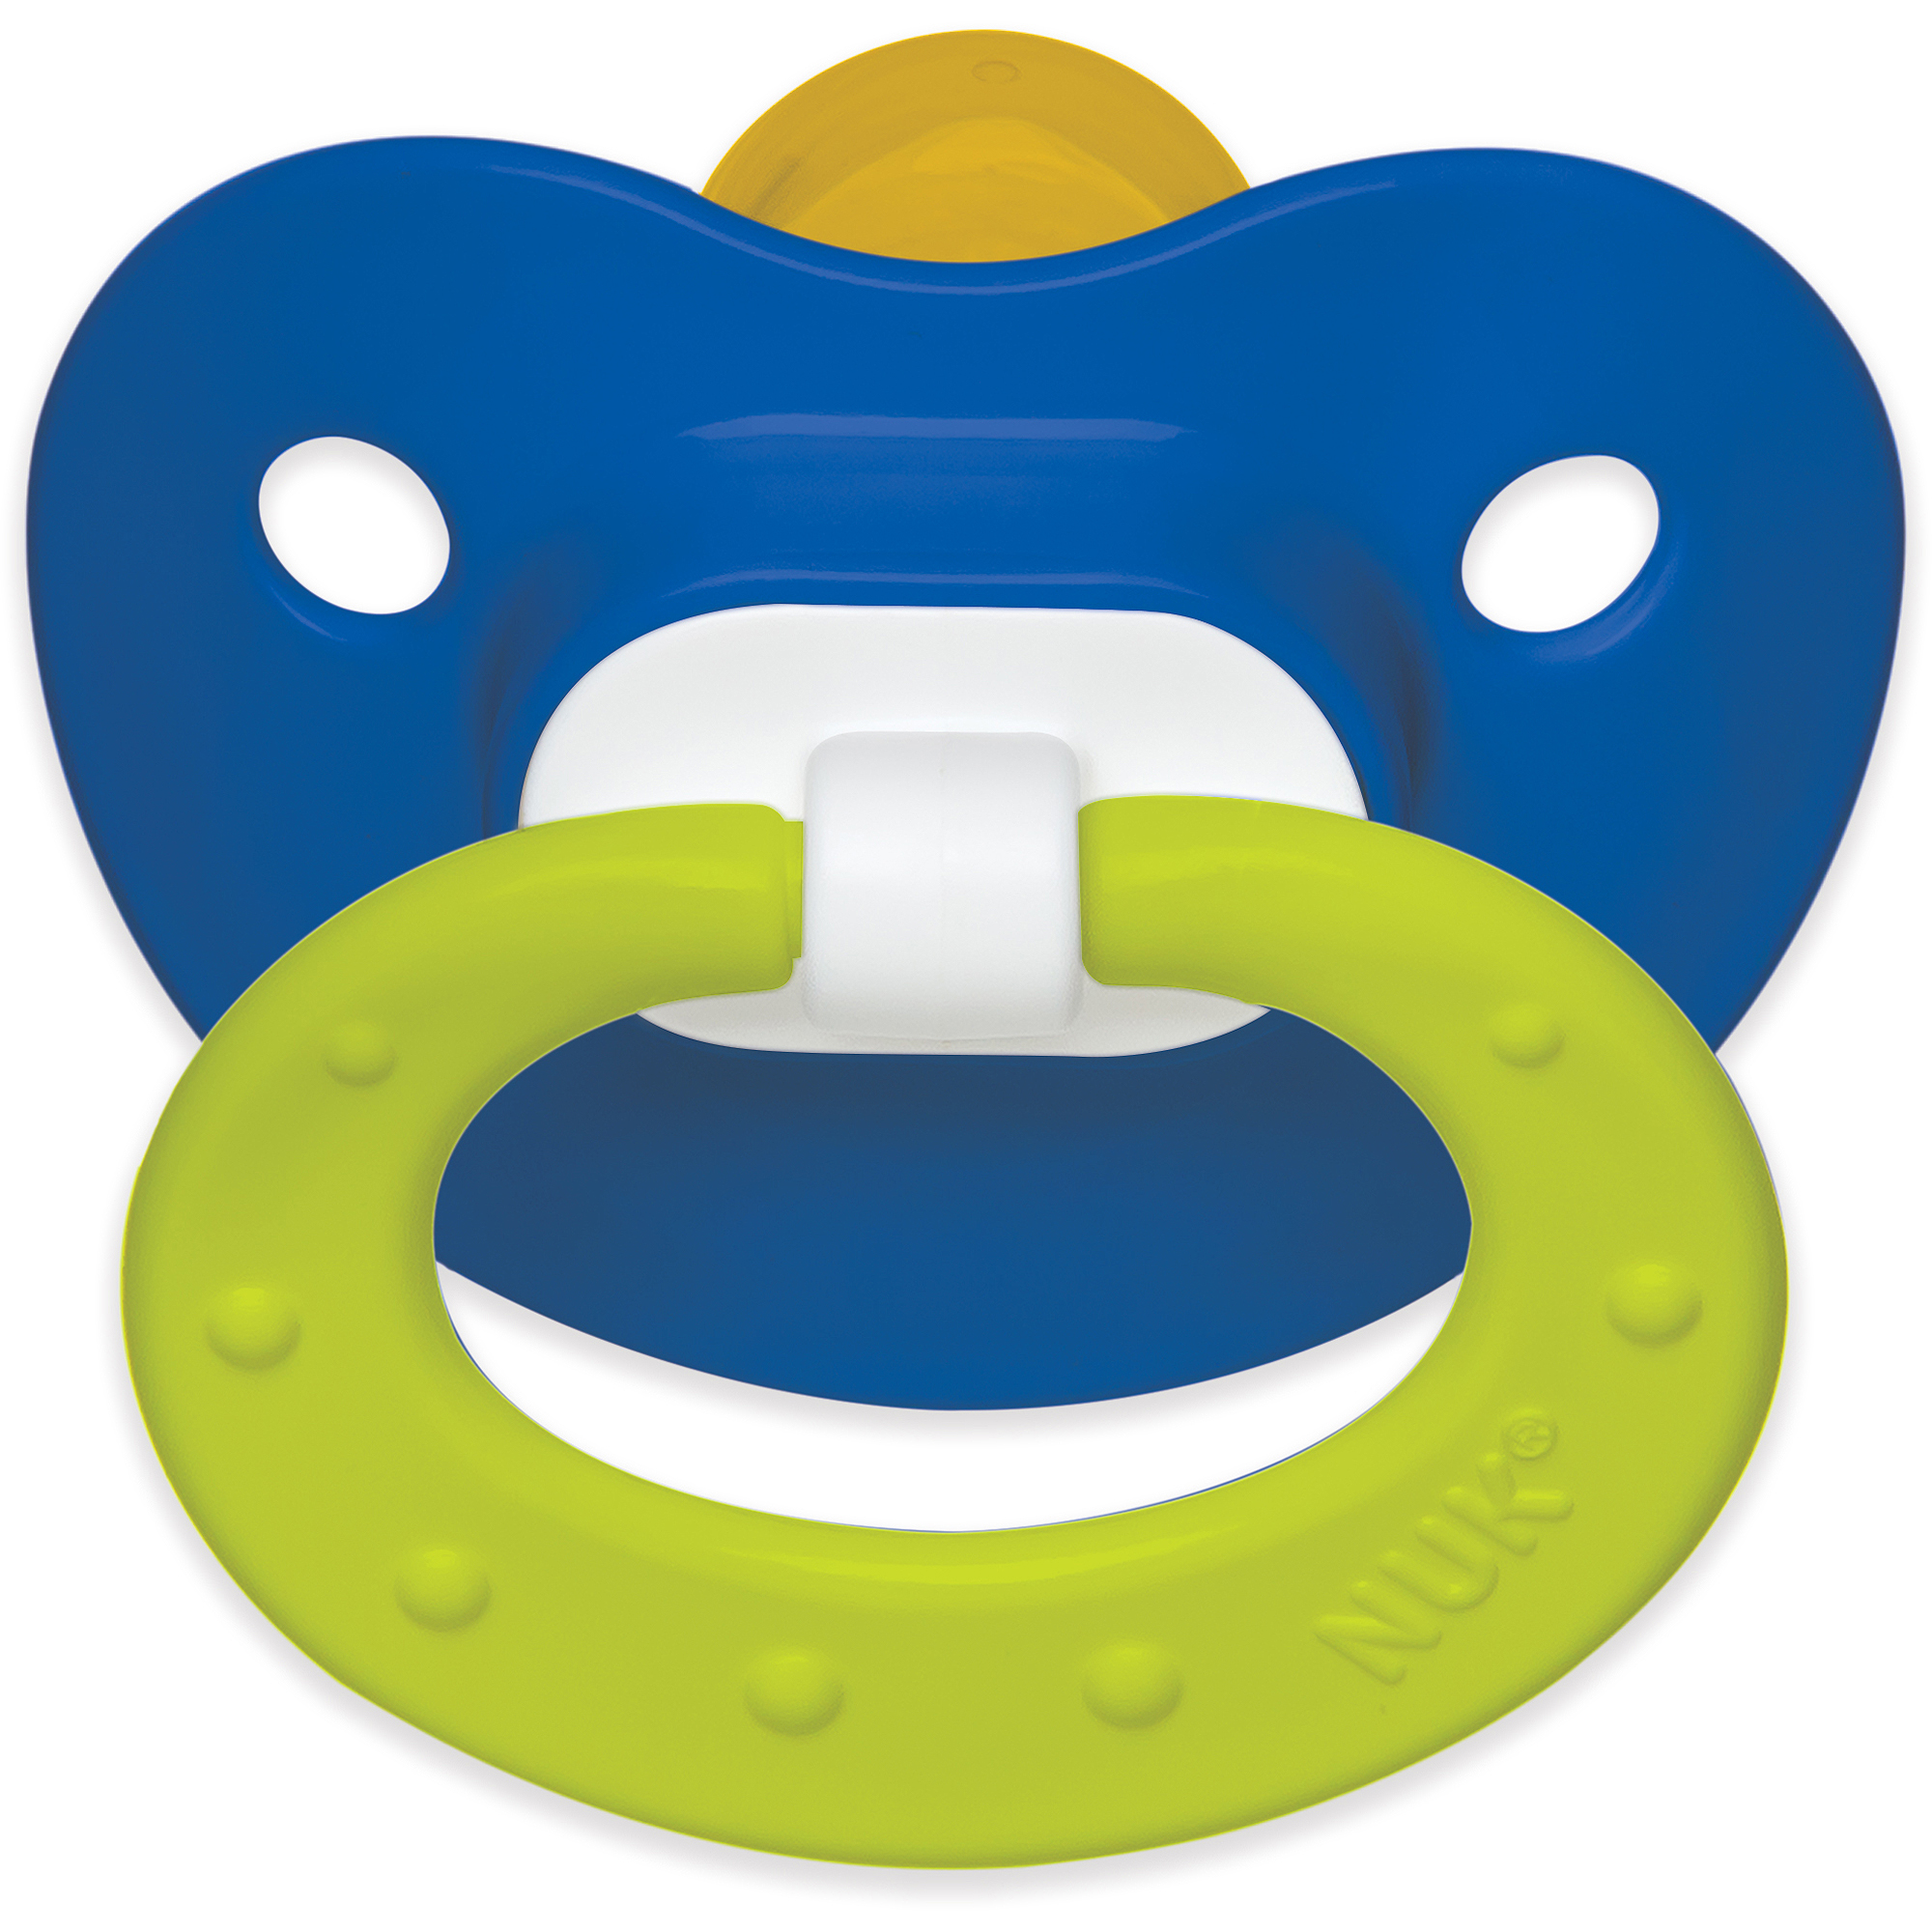 NUK Juicy Latex Orthodontic Pacifiers, 2ct, 6-18 months, BPA-Free (Colors May Vary)